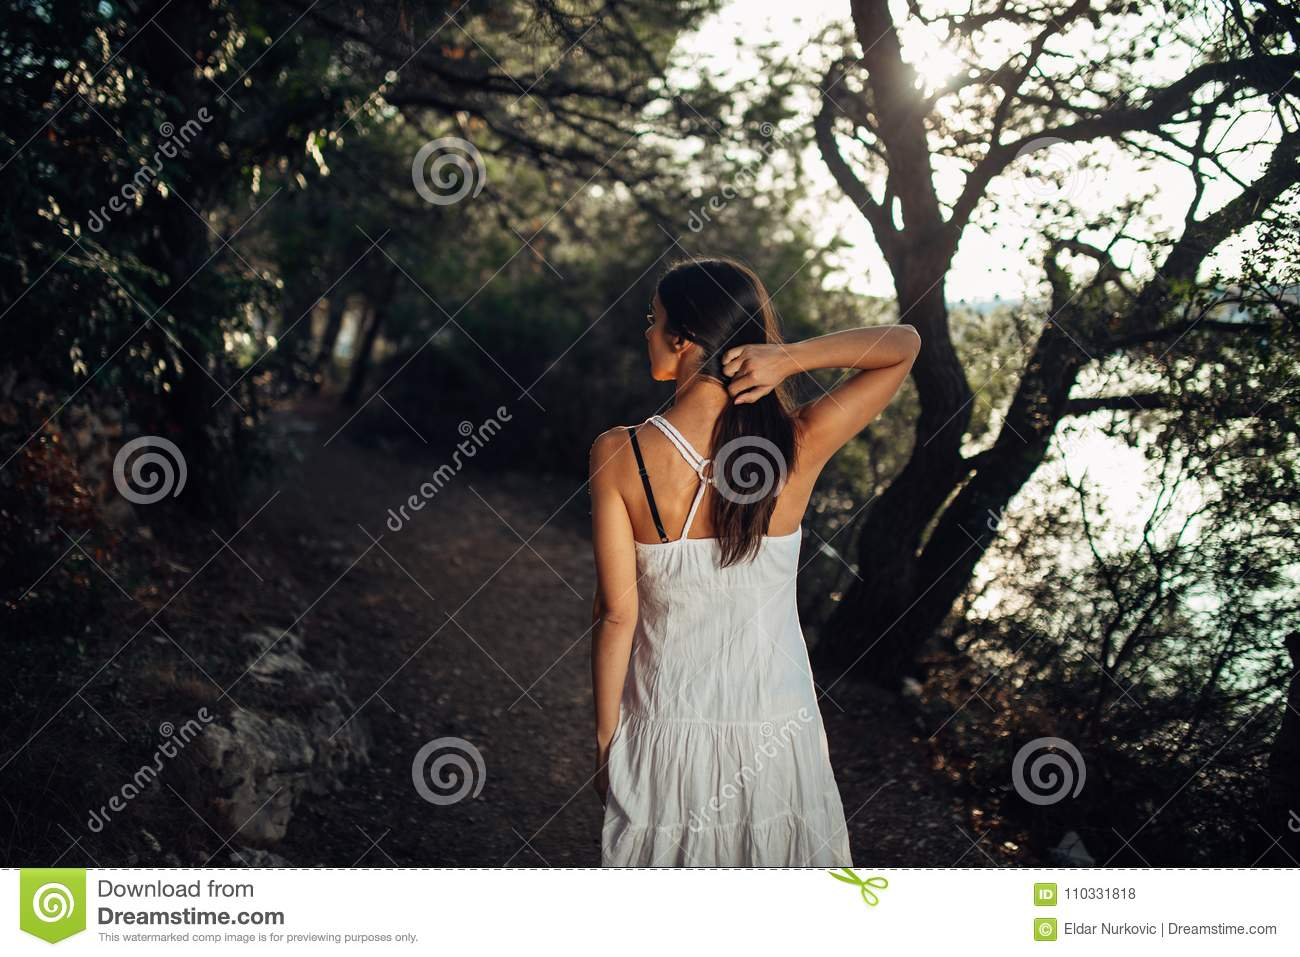 Romantic woman enjoying walk in the nature on a sunny morning.Mindful carefree female in natural environment feeling stress free